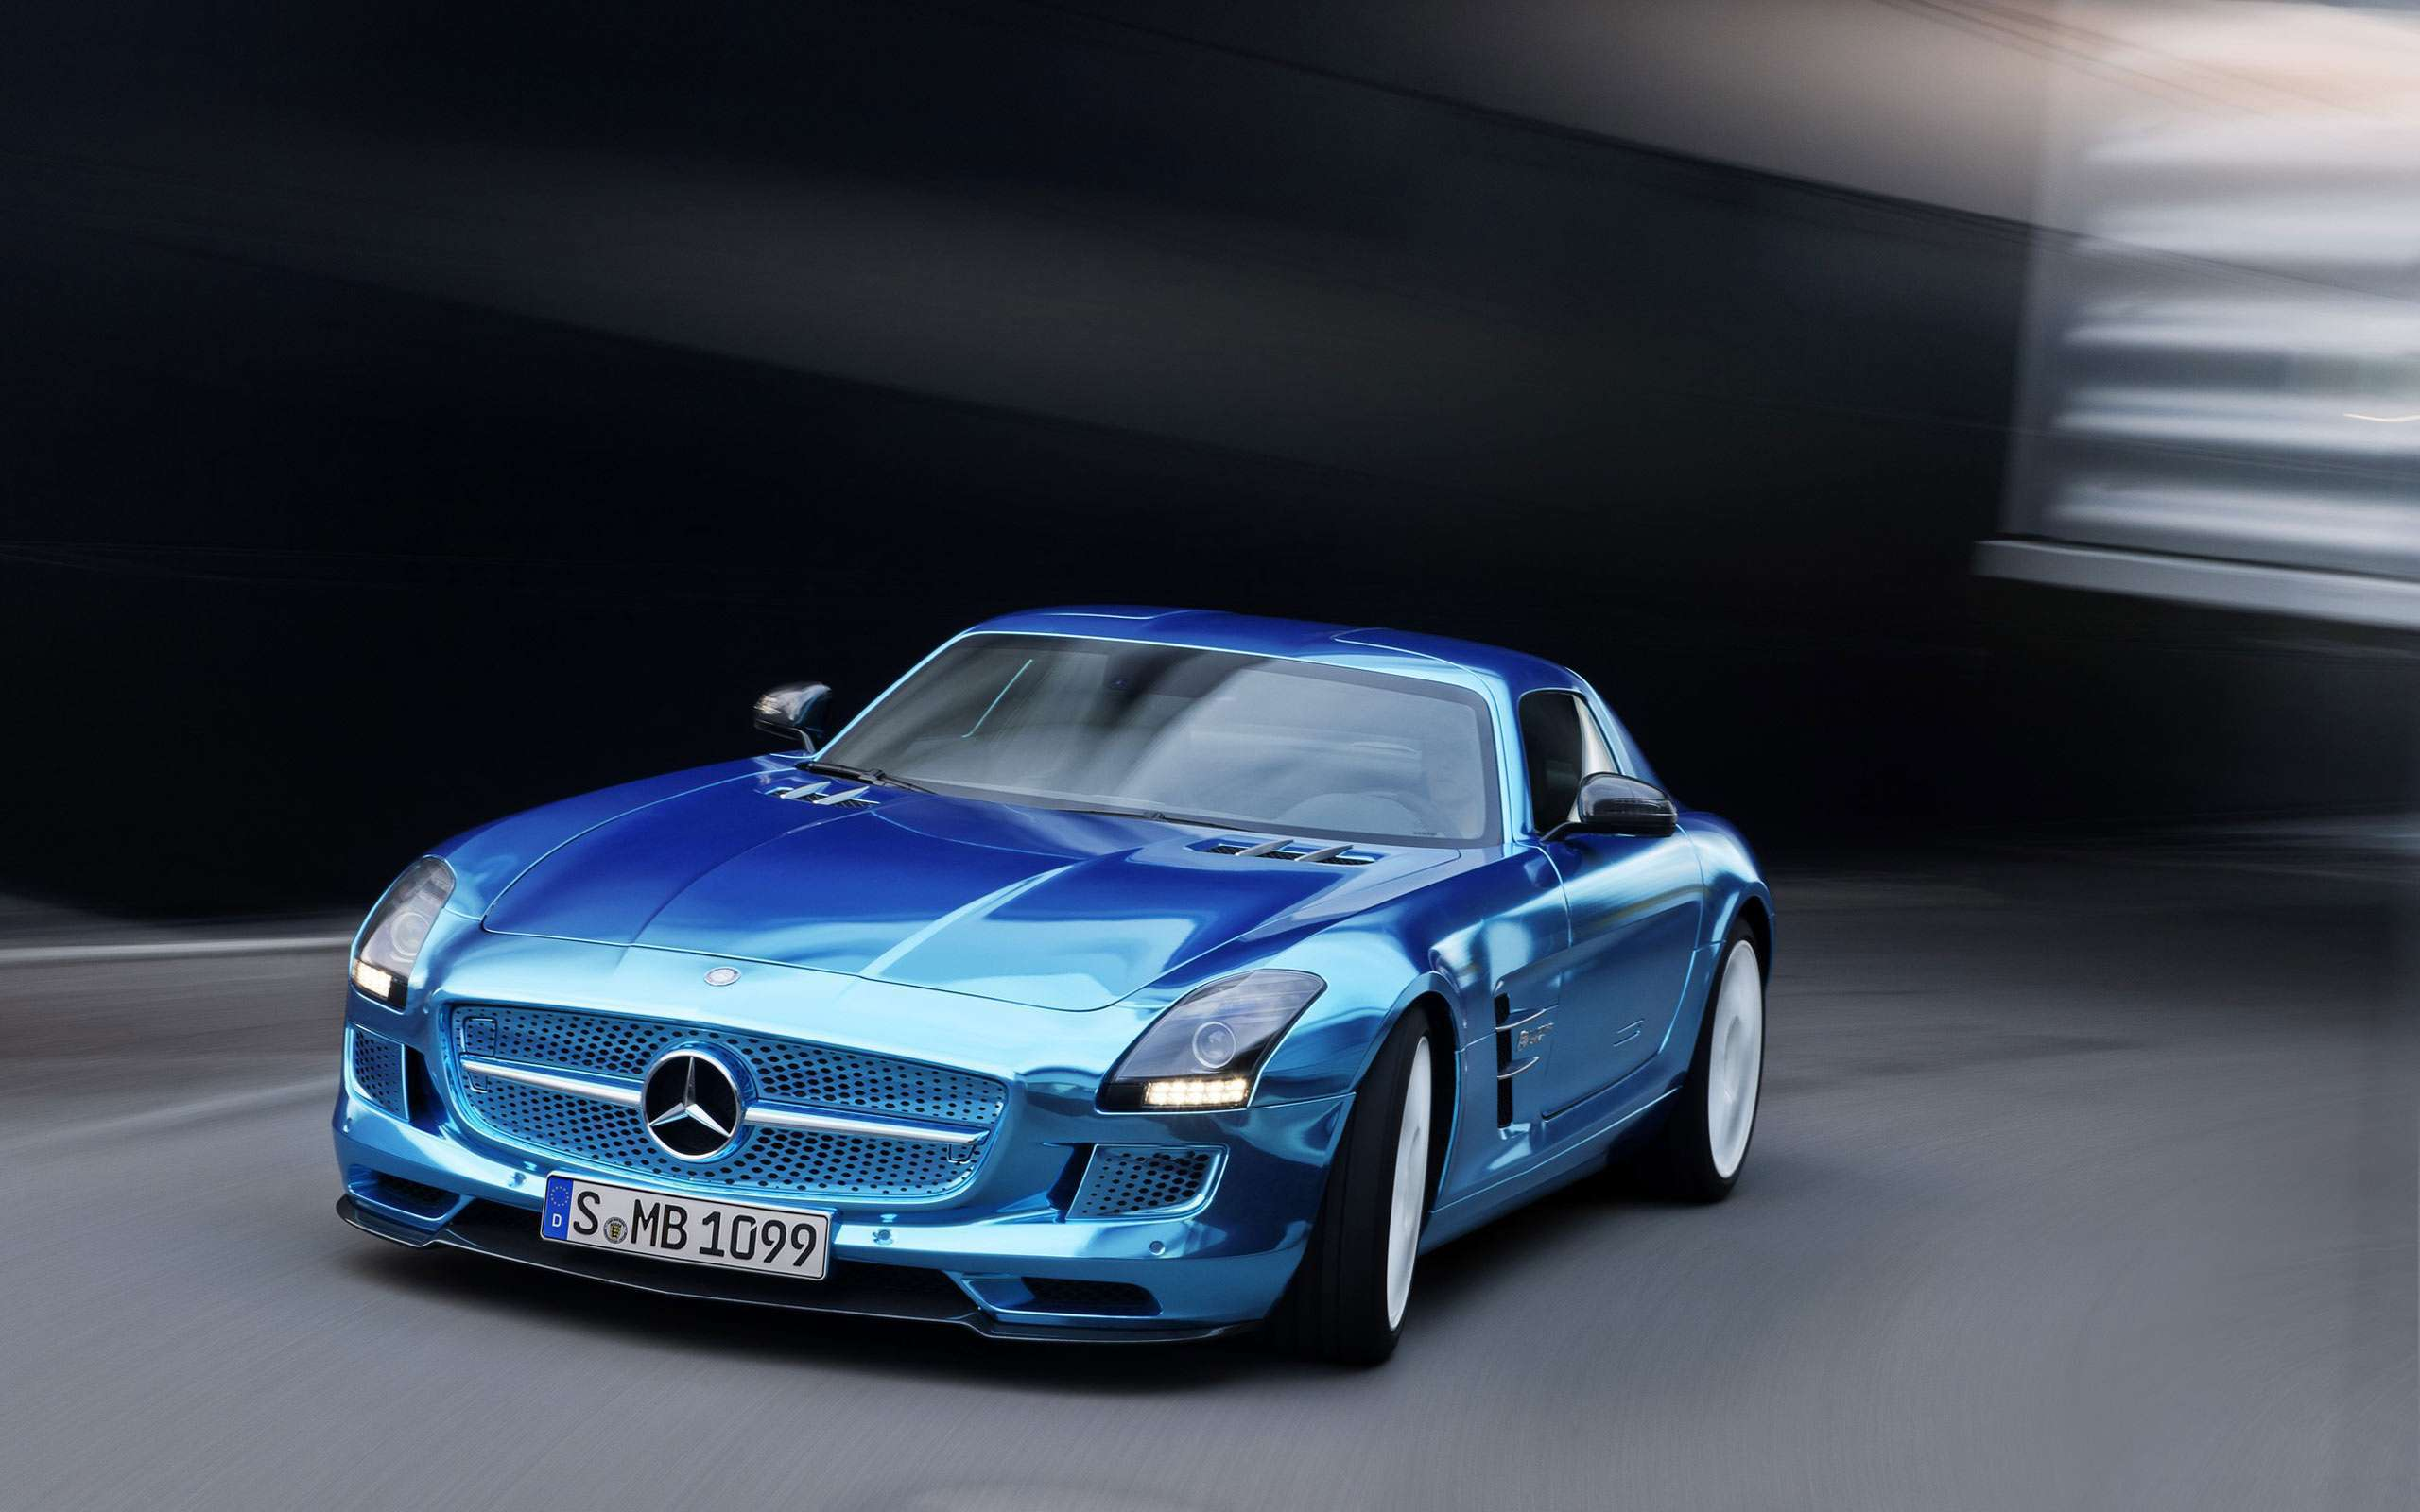 2014 Mercedes Benz Sls Amg Coupe Electric Hd Wallpapers